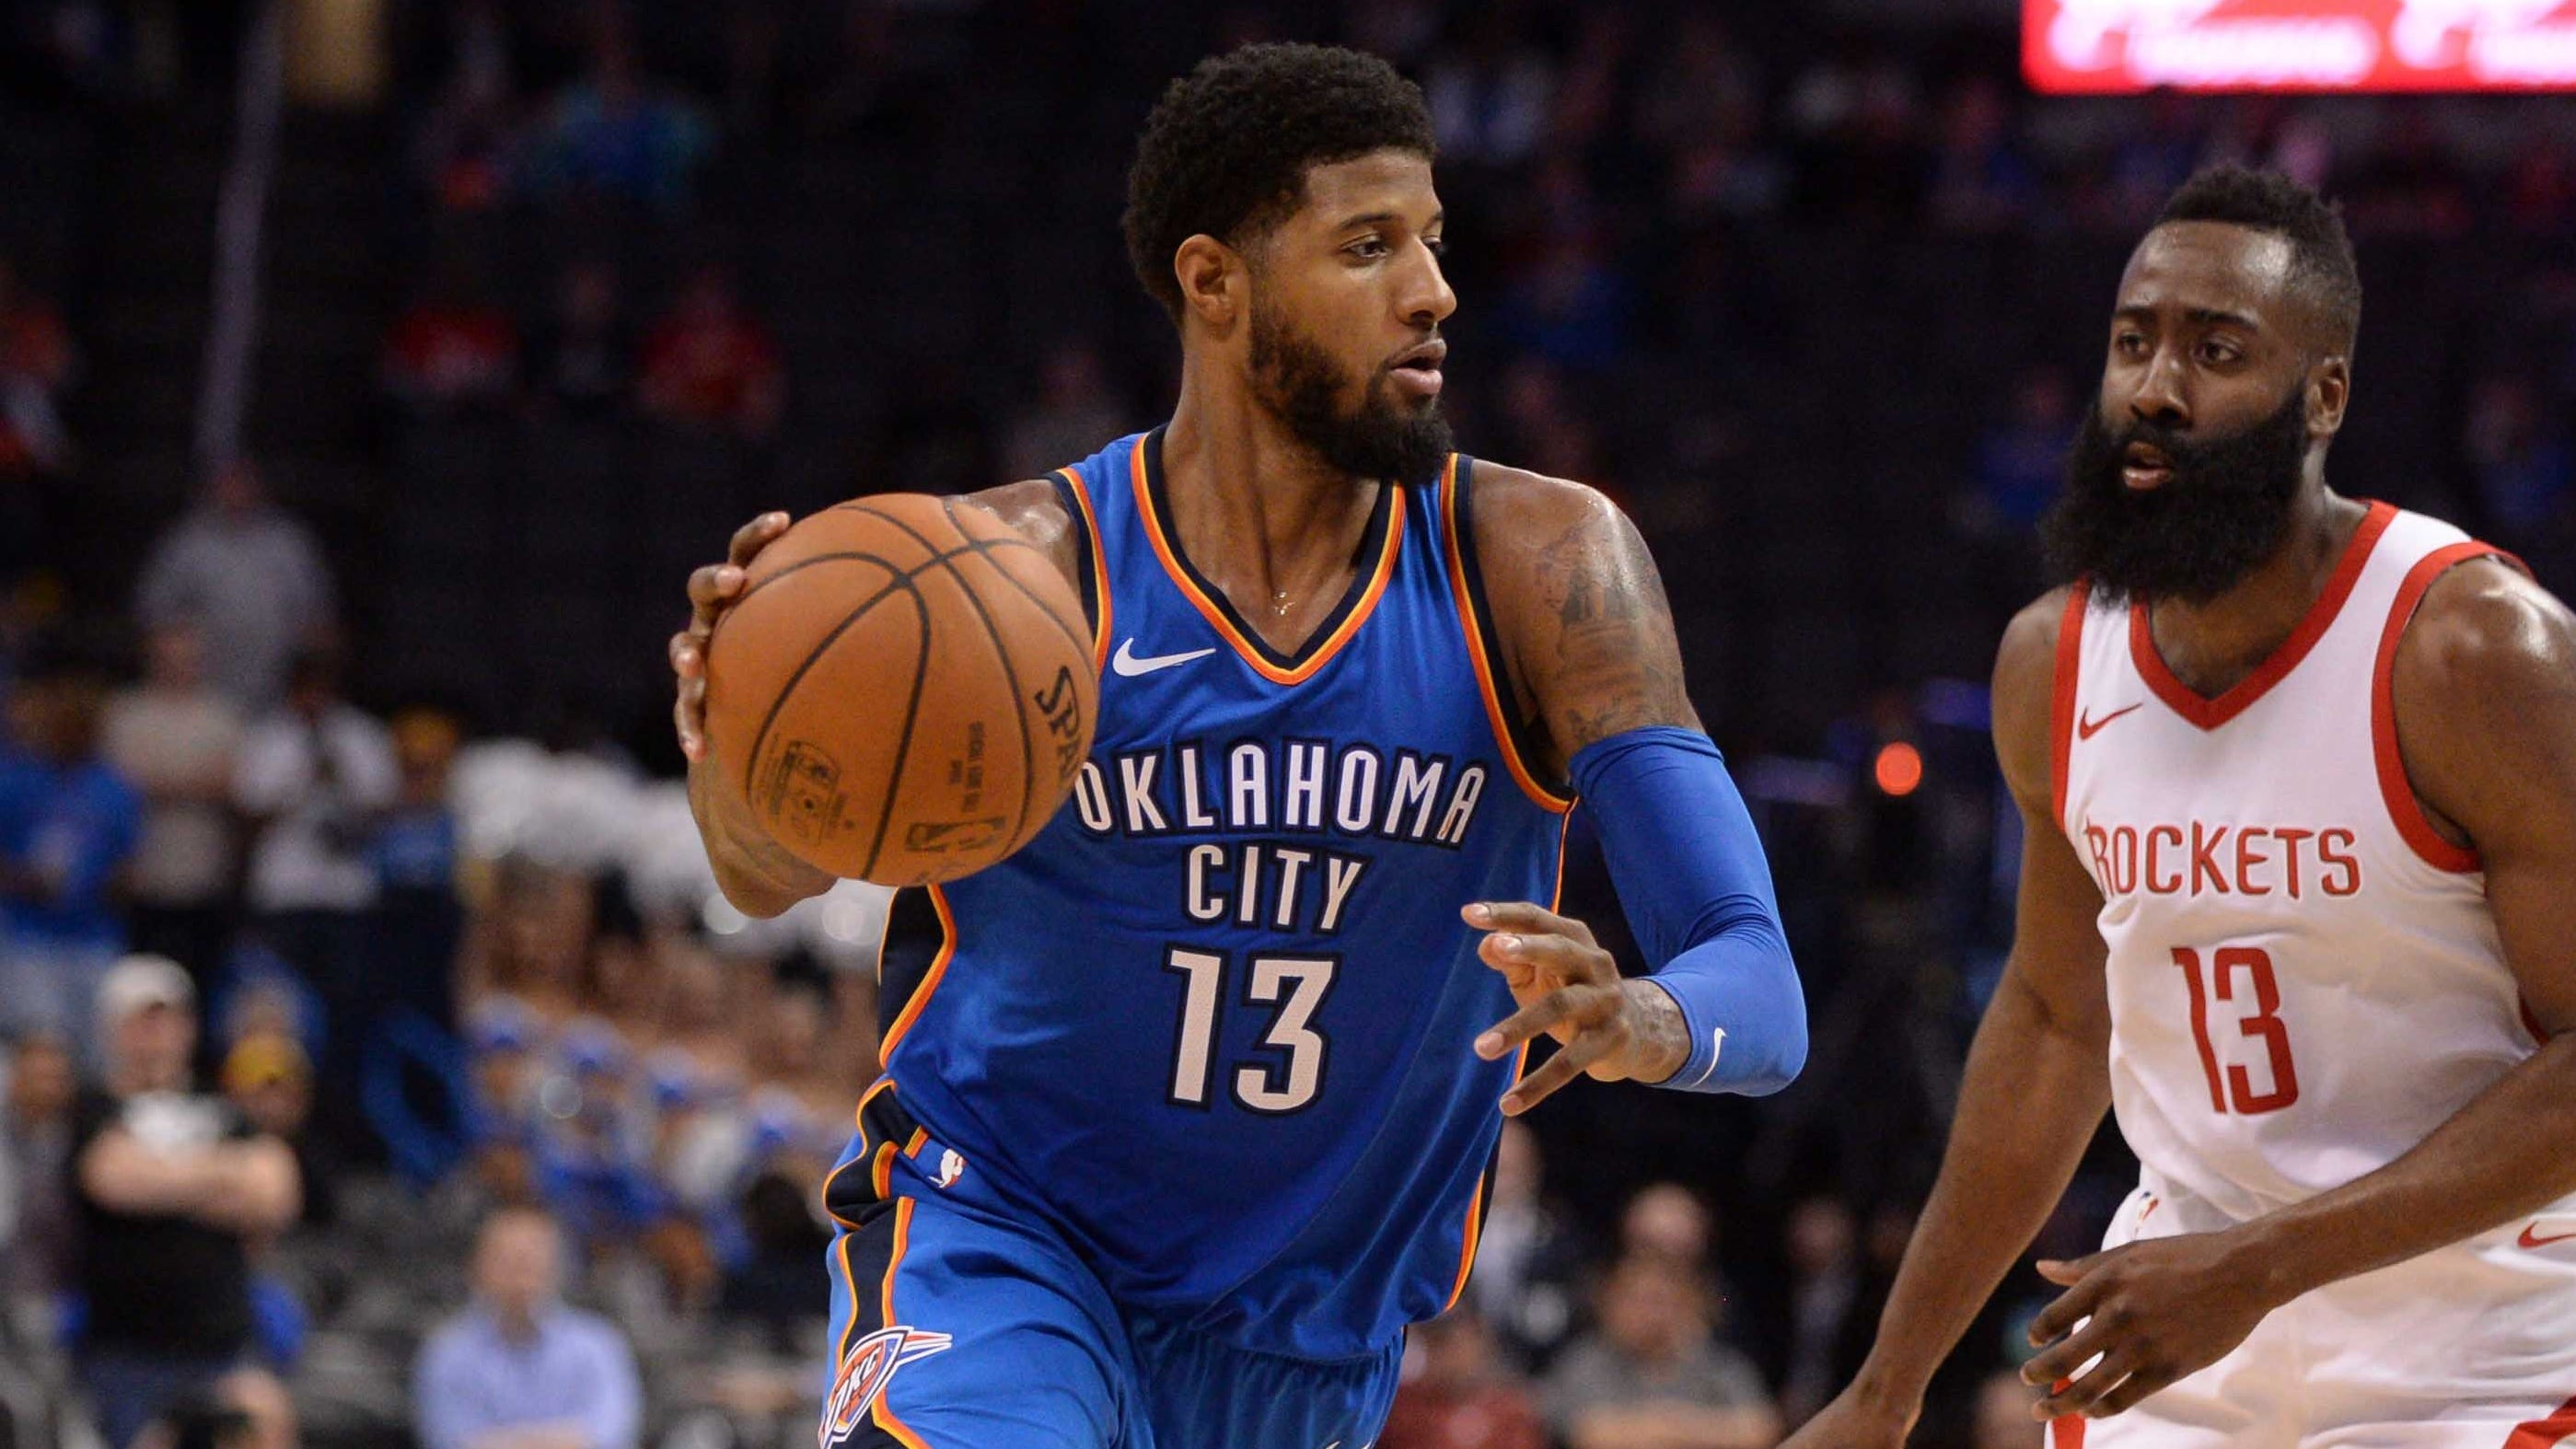 Paul George: Why Paul George Chose The Thunder Over The Lakers